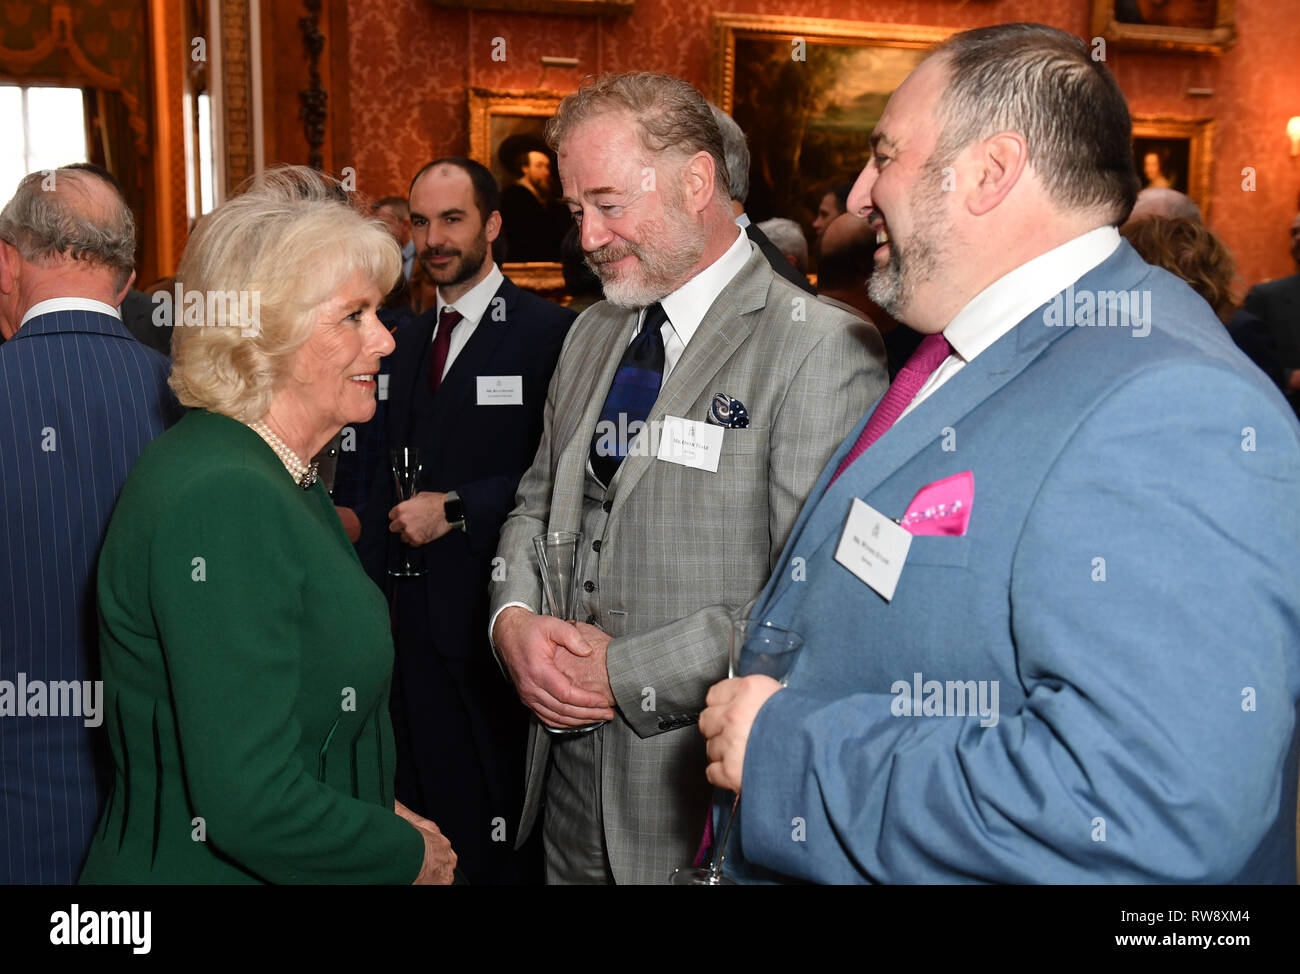 The Duchess of Cornwall speaks with actor Owen Teale and singer Wynne Evans (right) at a reception at Buckingham Palace in London to mark the fiftieth anniversary of the investiture of the Prince of Wales. - Stock Image